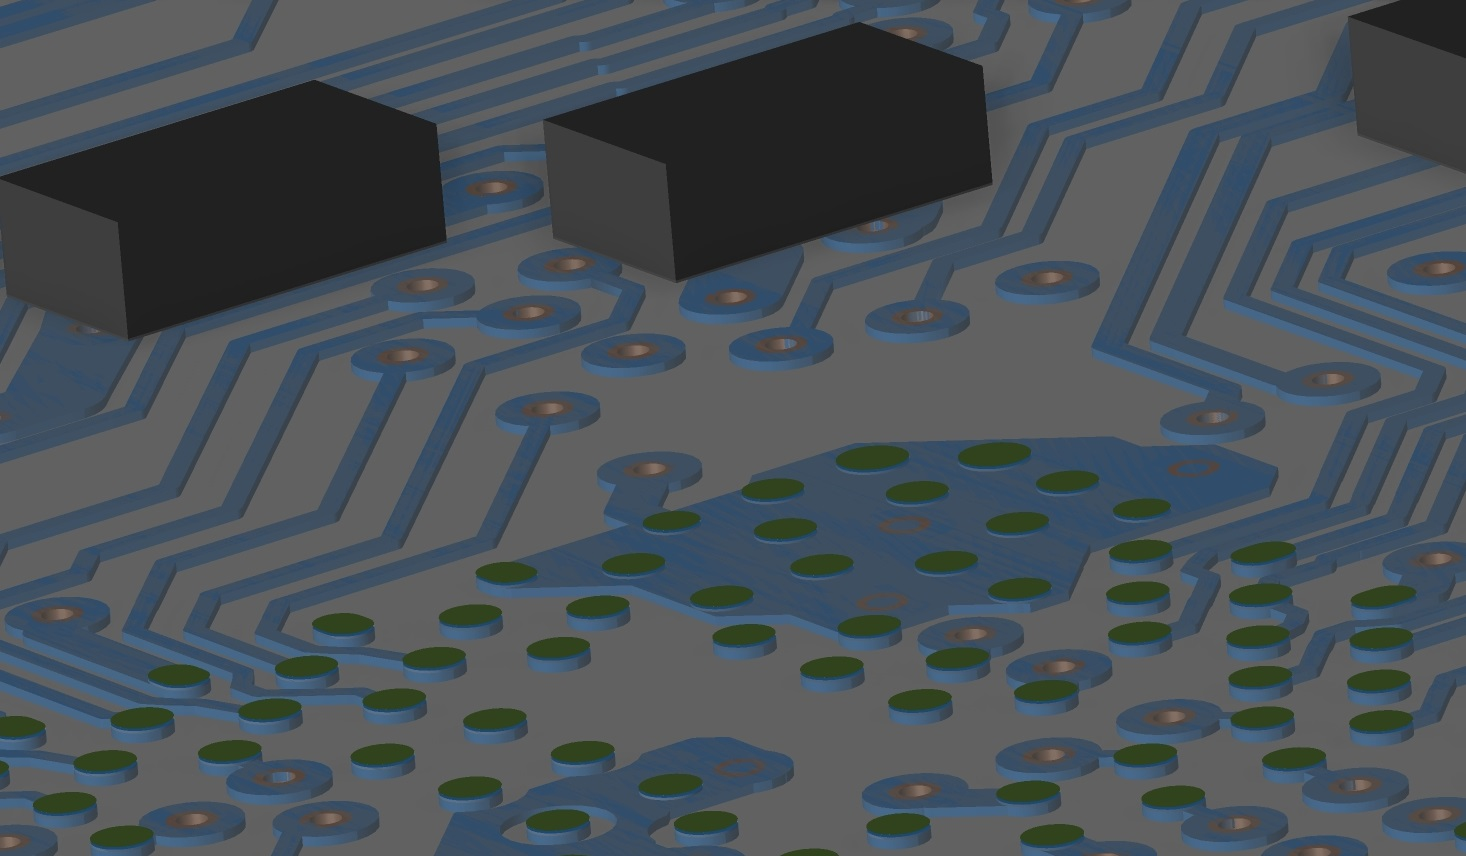 Vias, traces, copper pour, and components in a 3D PCB layout